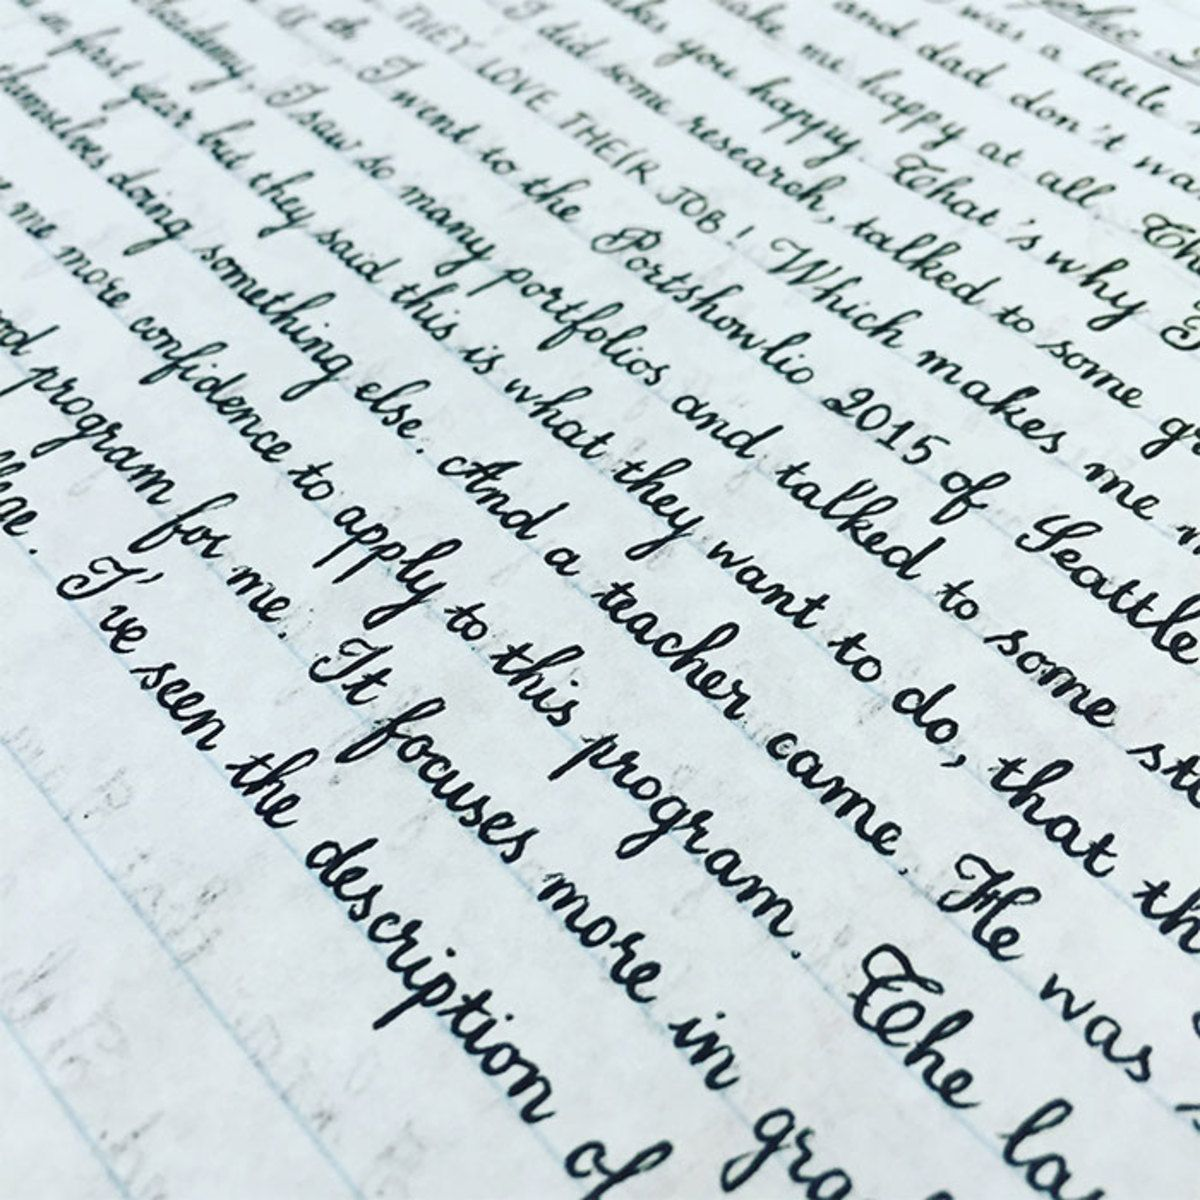 30 Unbelievably Satisfying Examples Of Perfect Handwriting